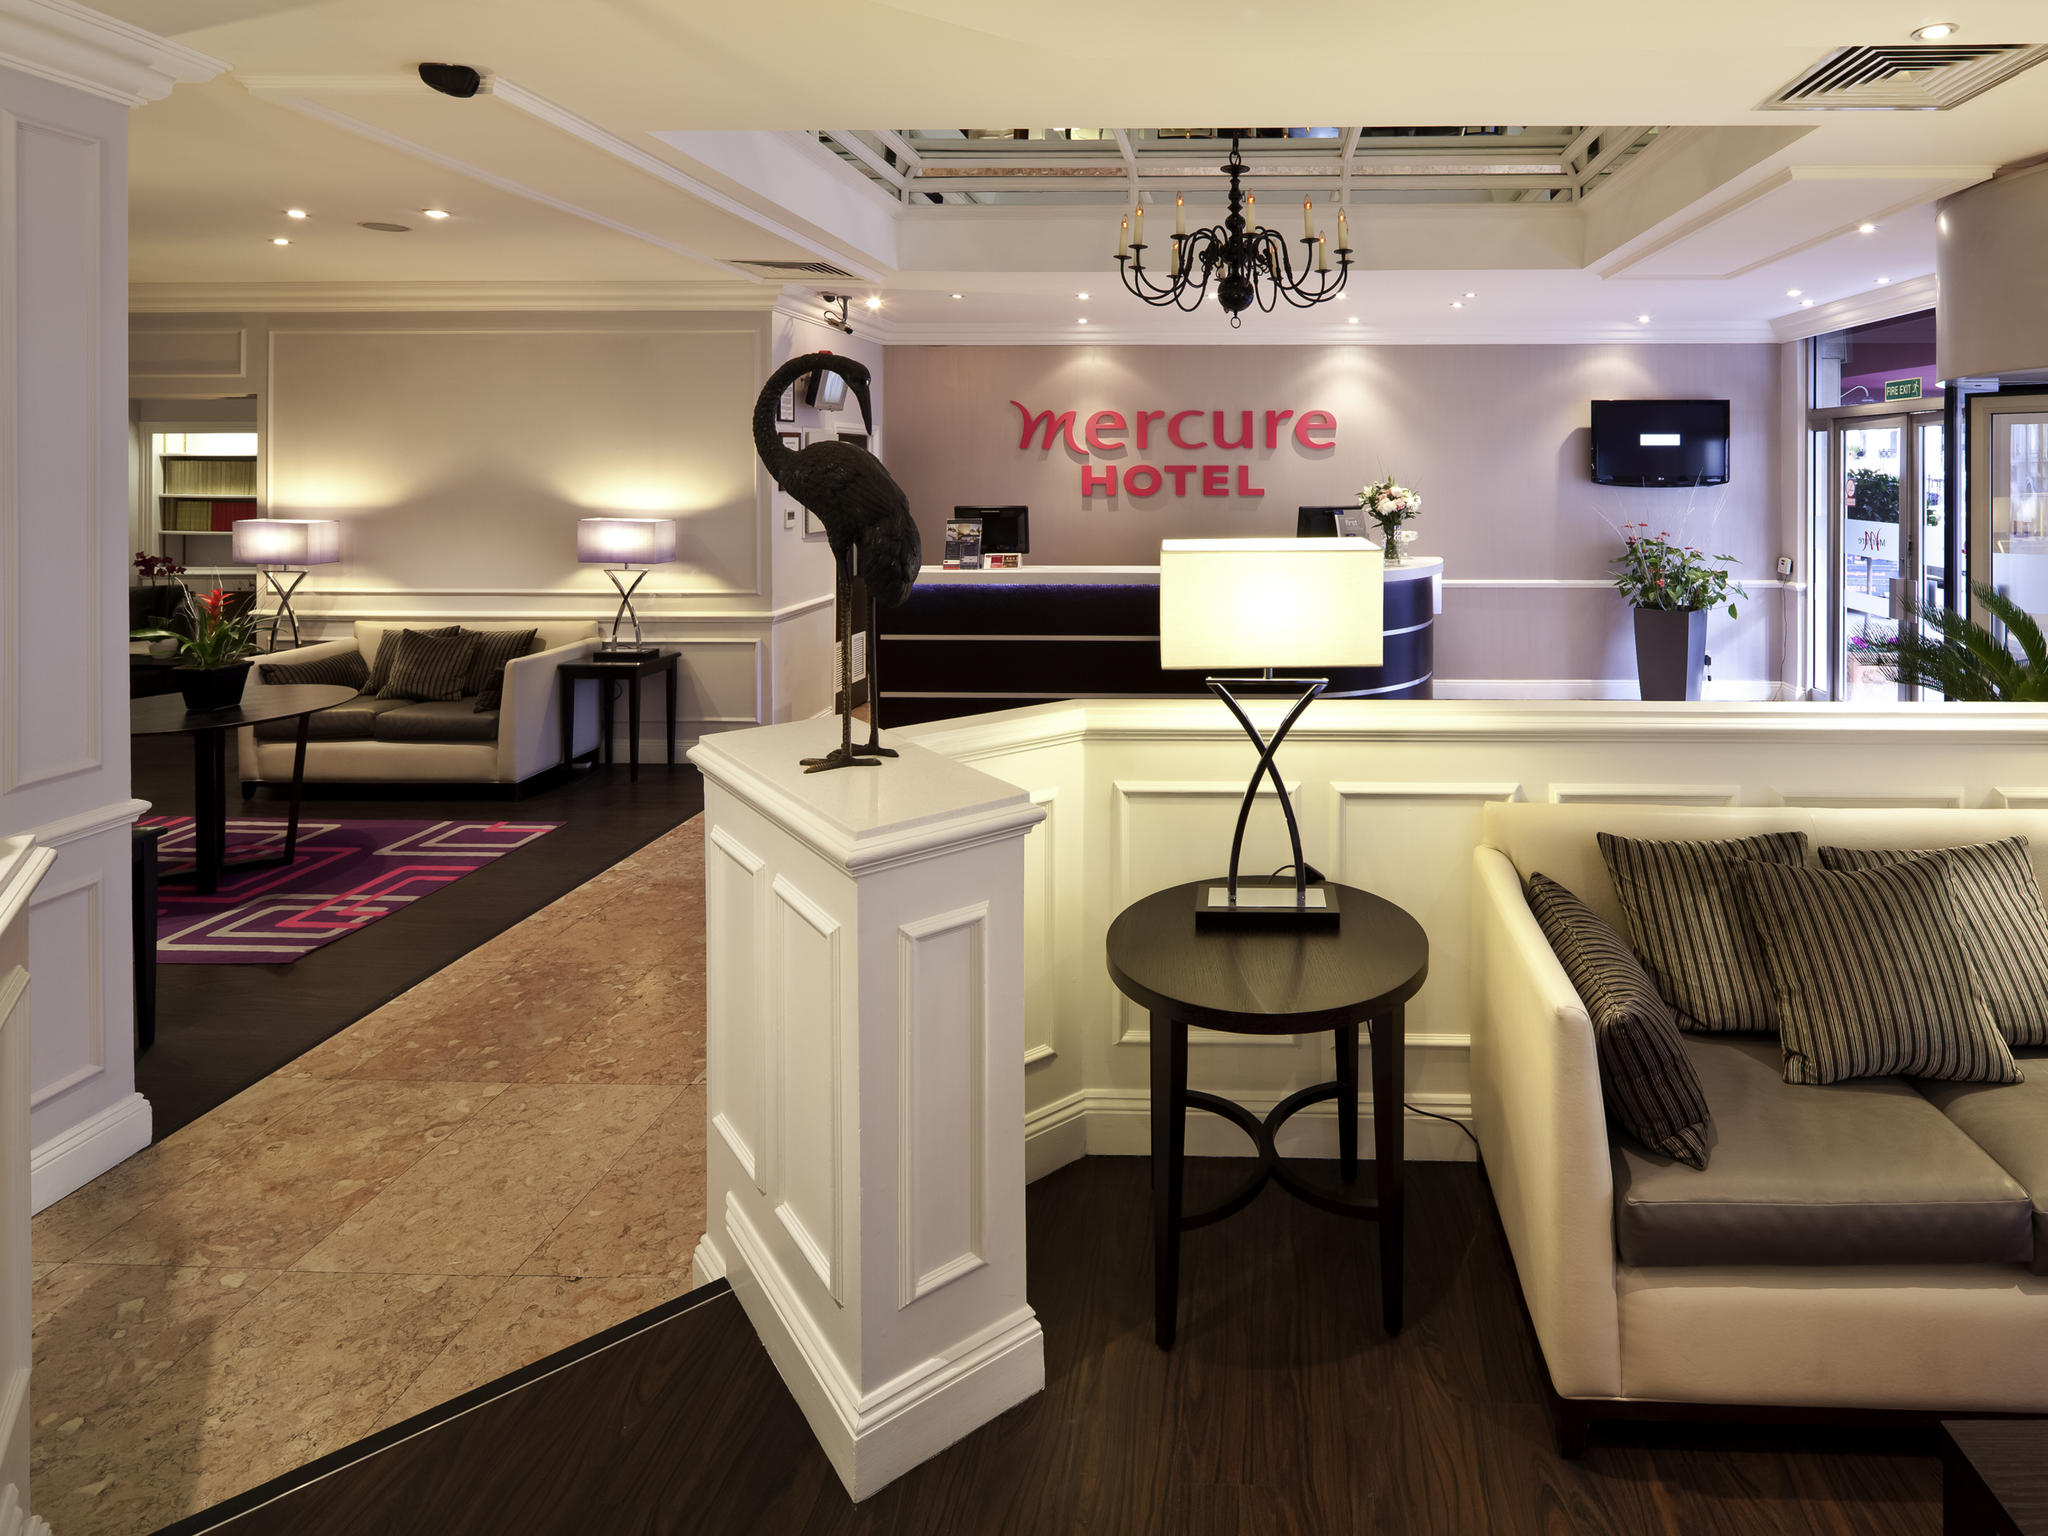 Hotel Mercure Kensington Londres